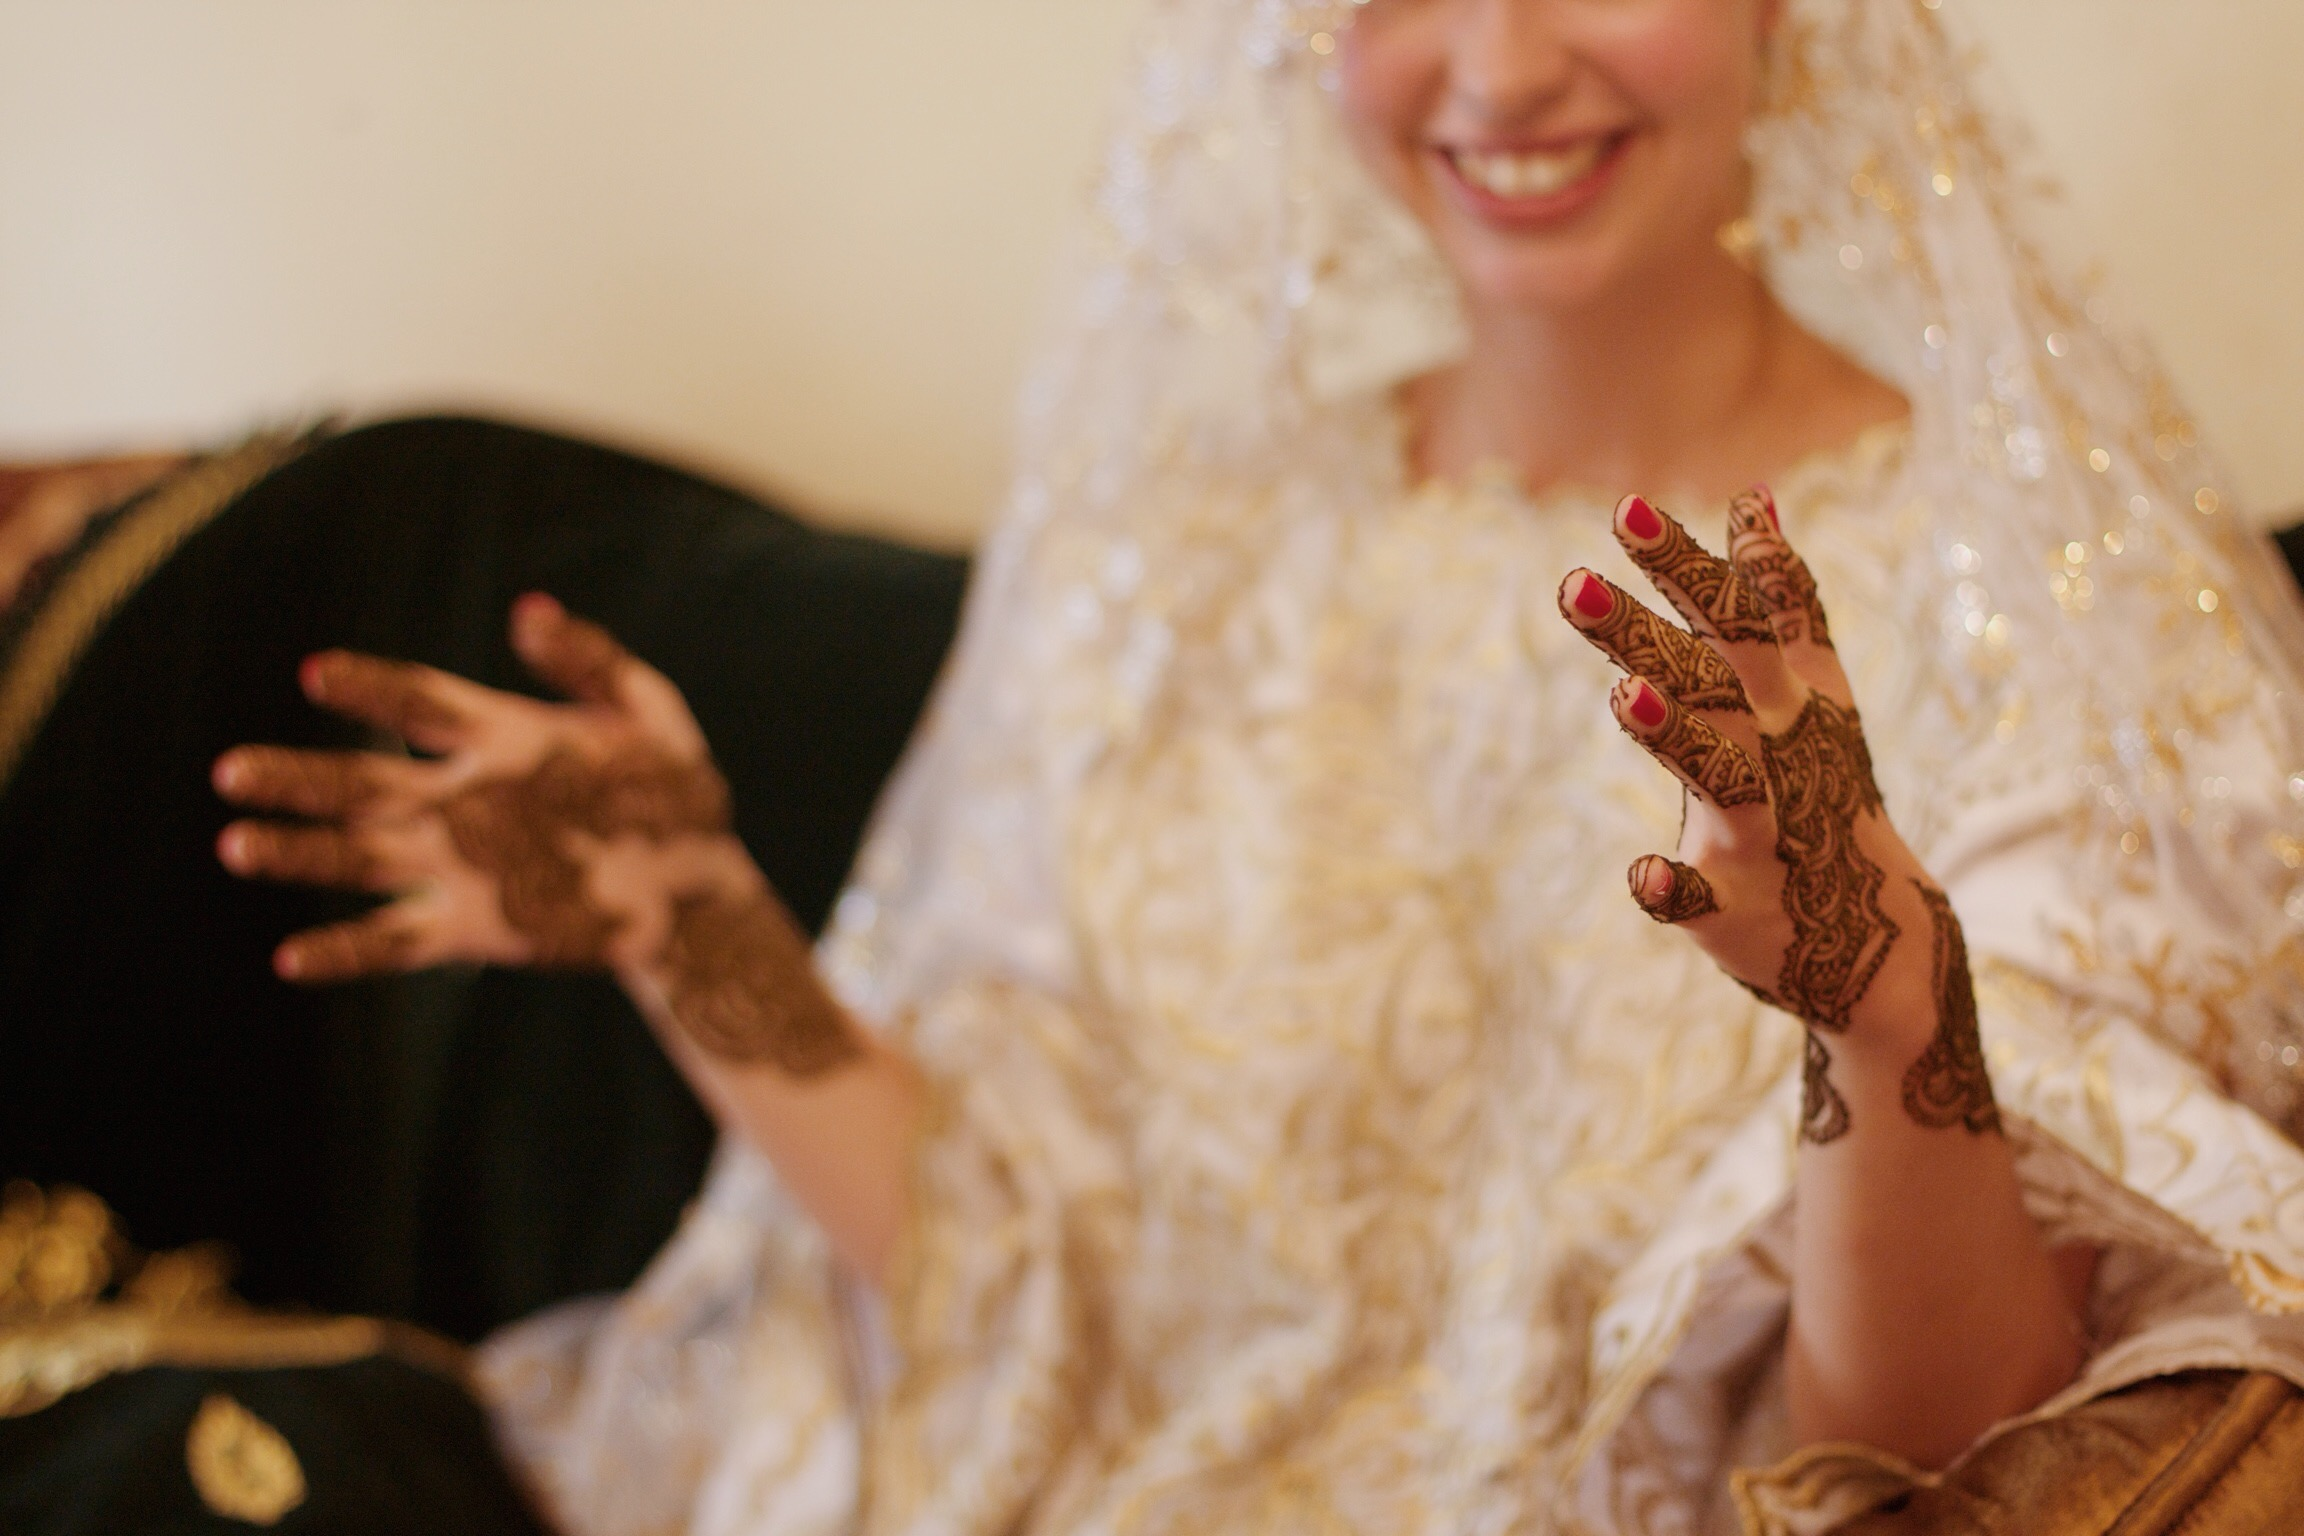 Moroccan Henna Ceremony | Ruby Josephine Blog